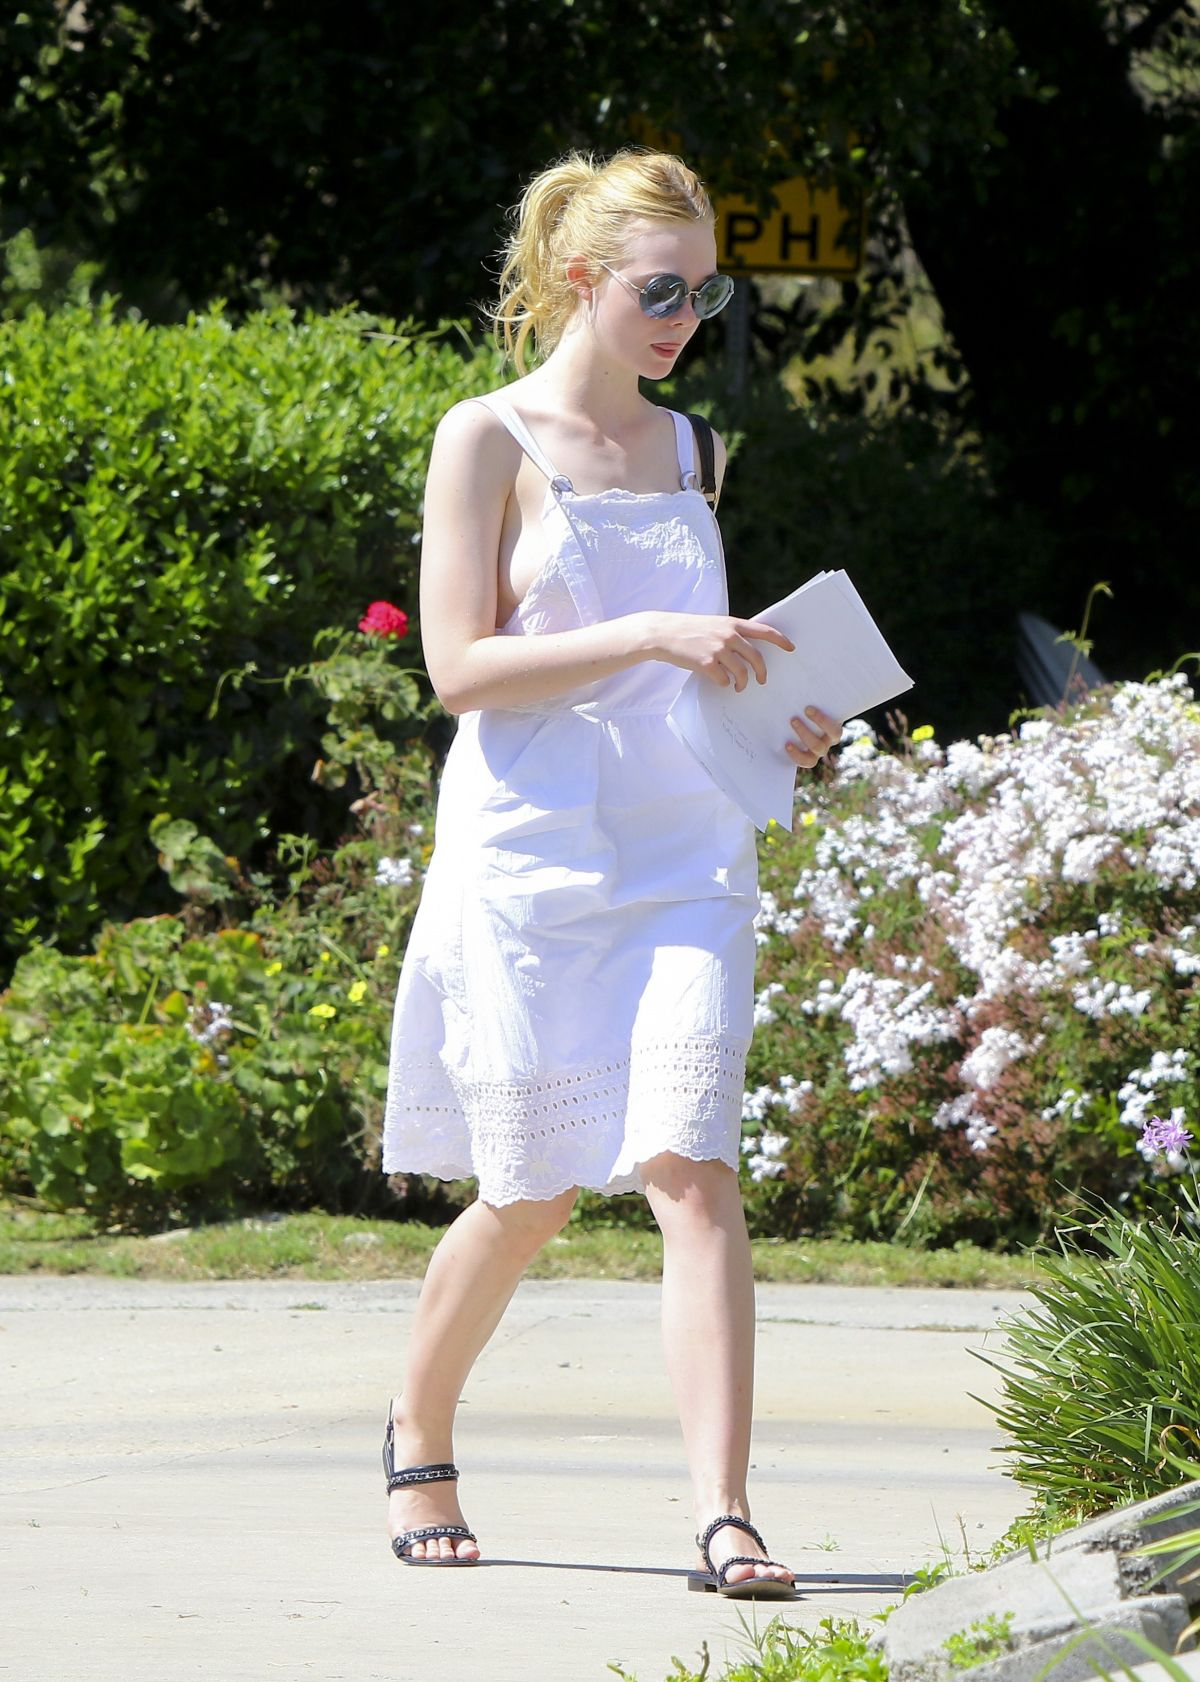 15 elle fanning - photo #20